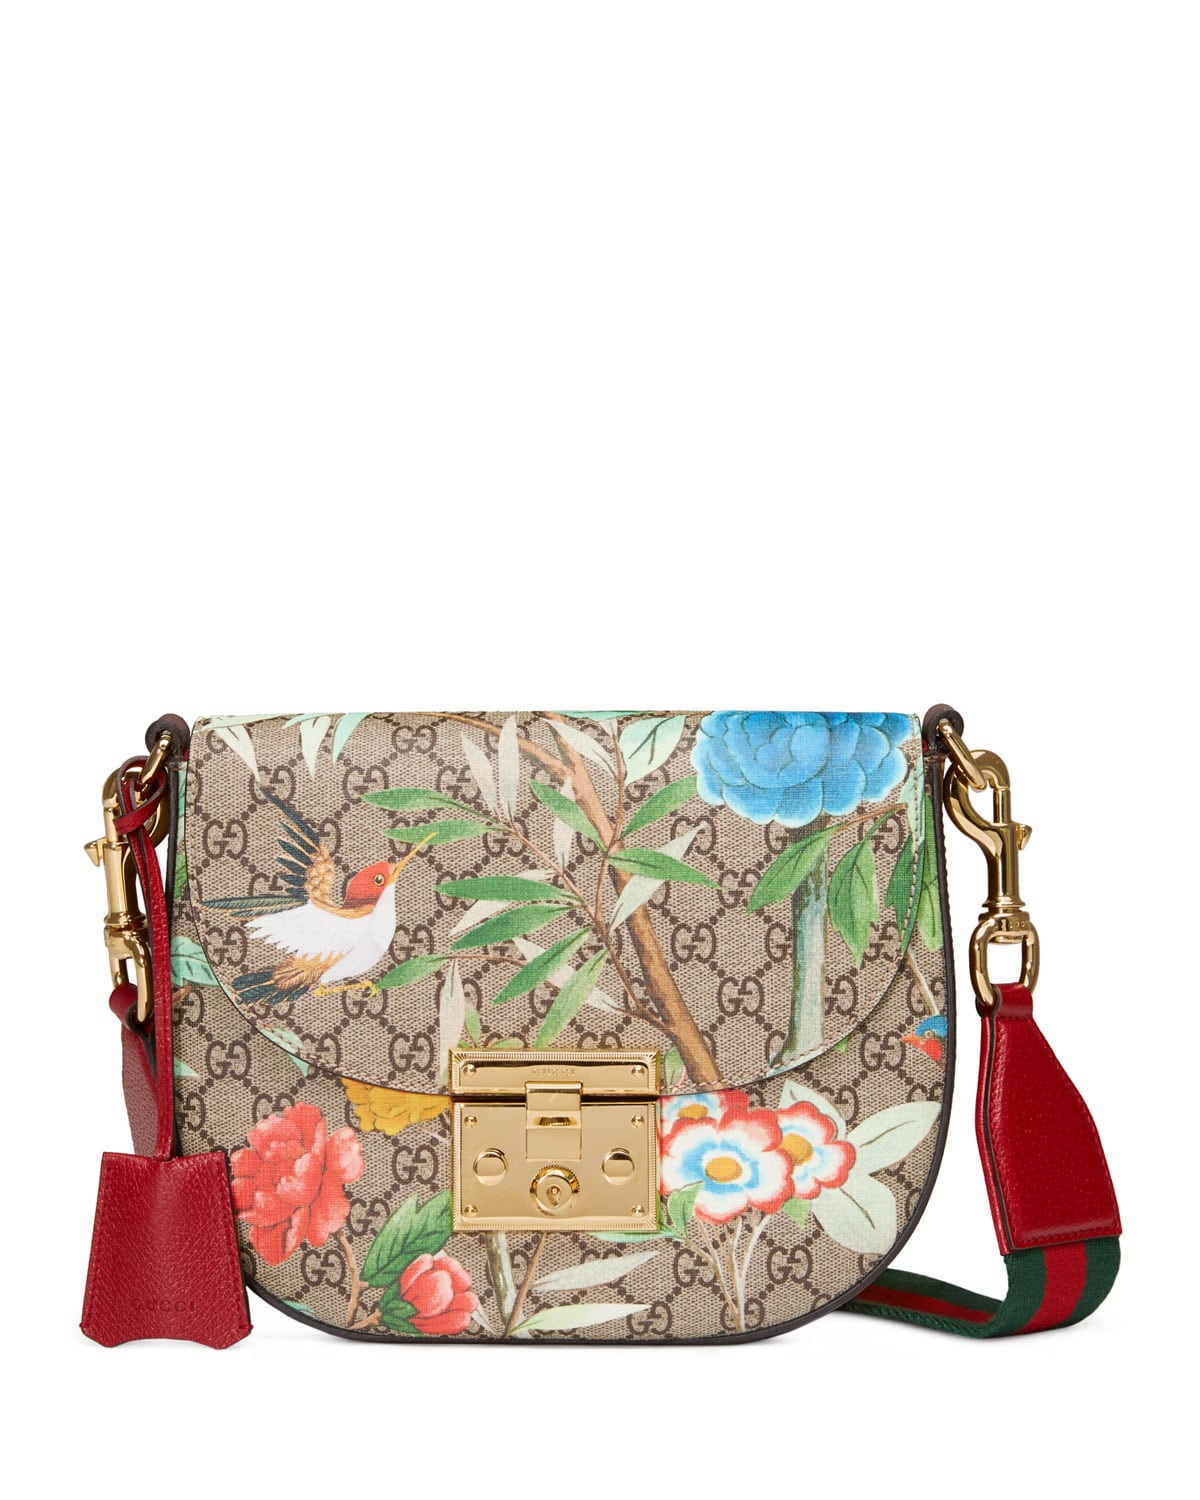 15918f757dca06 Gucci Resort 2017 Bag Collection | Page 2 of 3 | Spotted Fashion